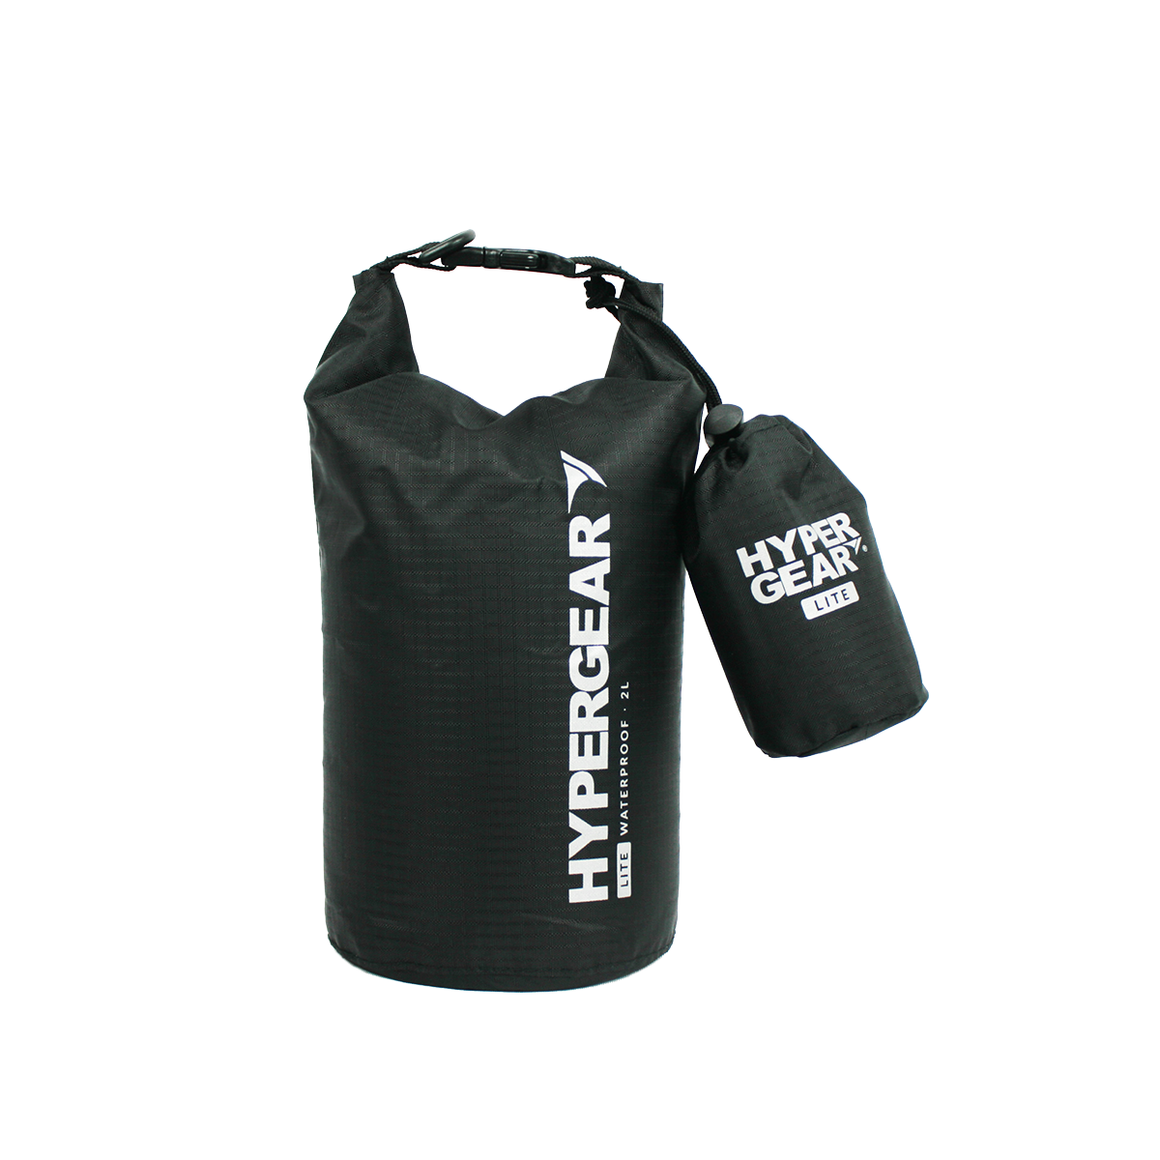 Matt Black Travel Protection Kit (Dry Bag Lite 2L + Neo Shield Face Cover + Gift Box)